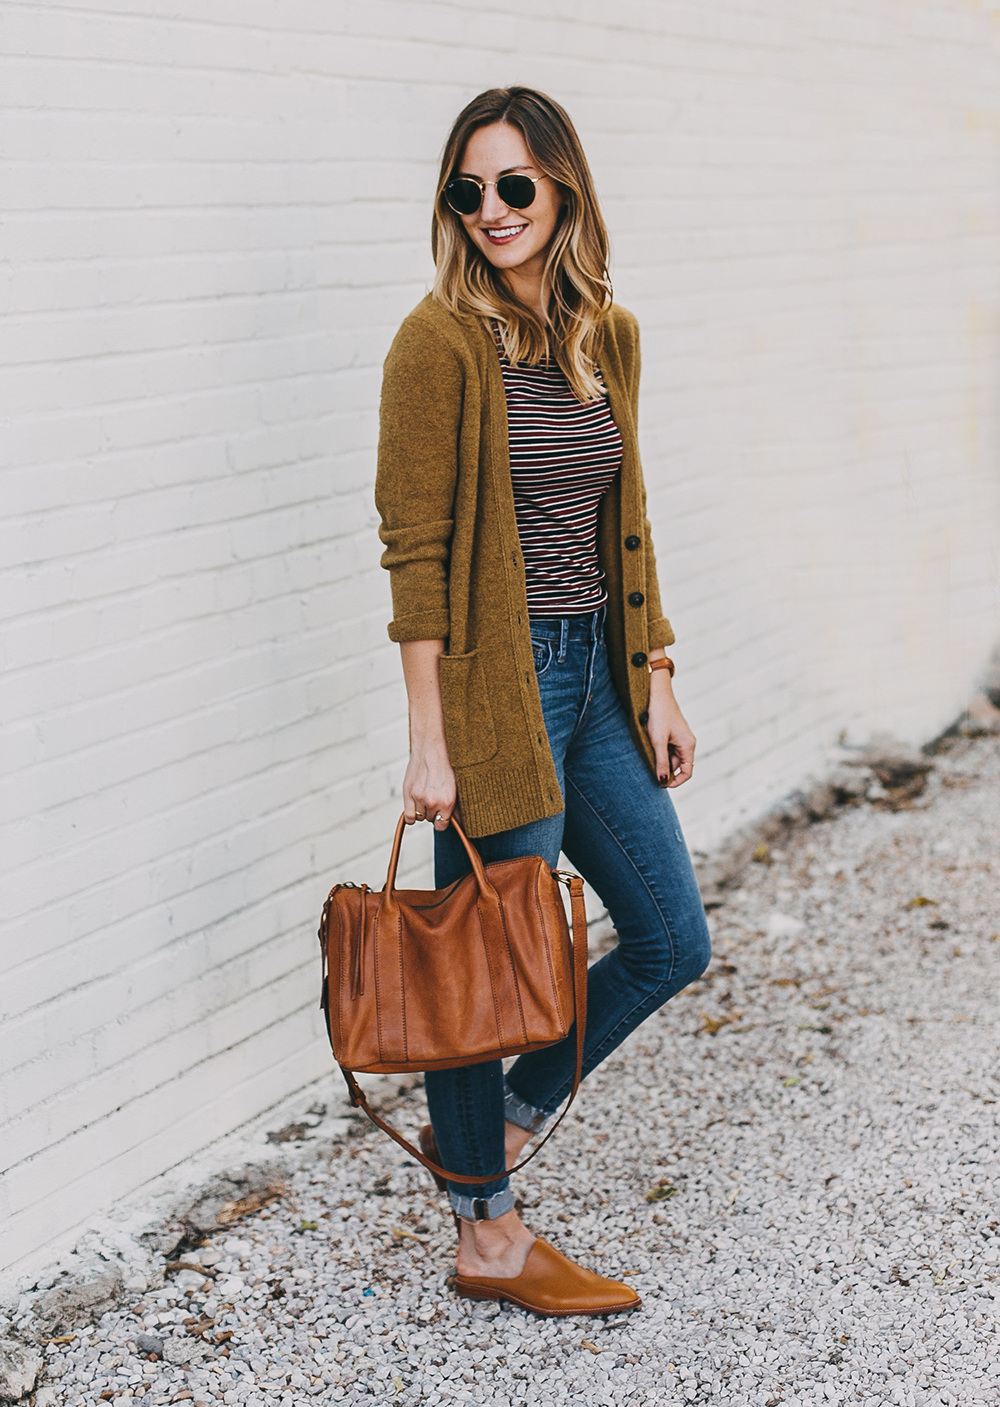 livvyland-blog-olivia-watson-austin-texas-fashion-lifestyle-blogger-madewell-grandpa-cardigan-button-up-high-rise-skinny-jeans-tan-leather-slides-fall-outfit-style-idea-9